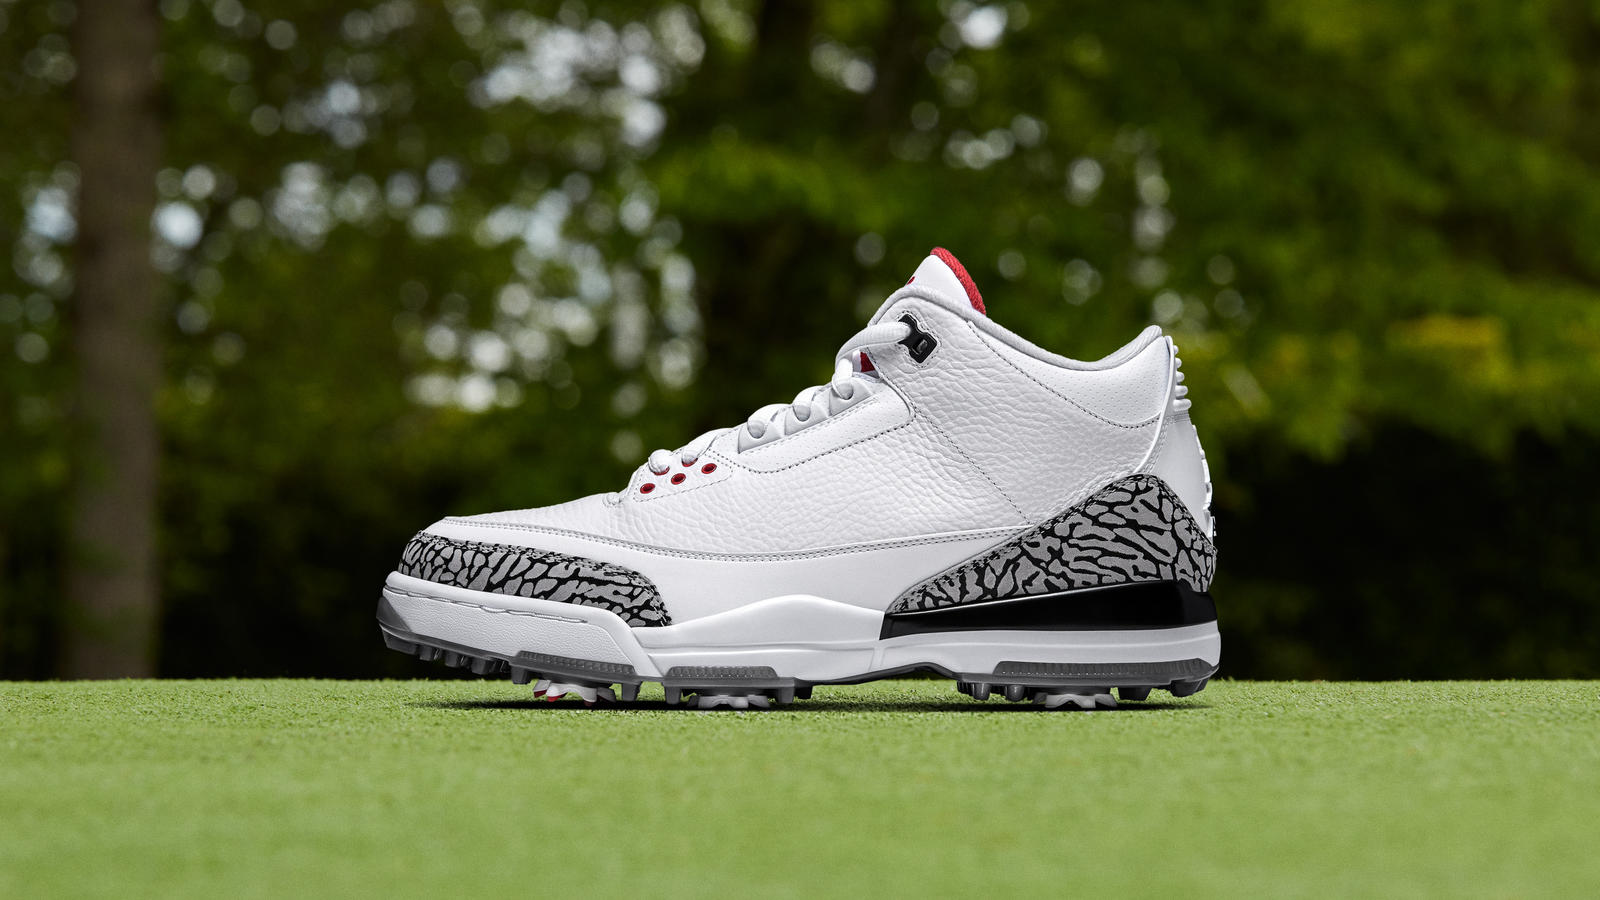 Air Jordan 3 Golf Shoe - Nike News 16894335a